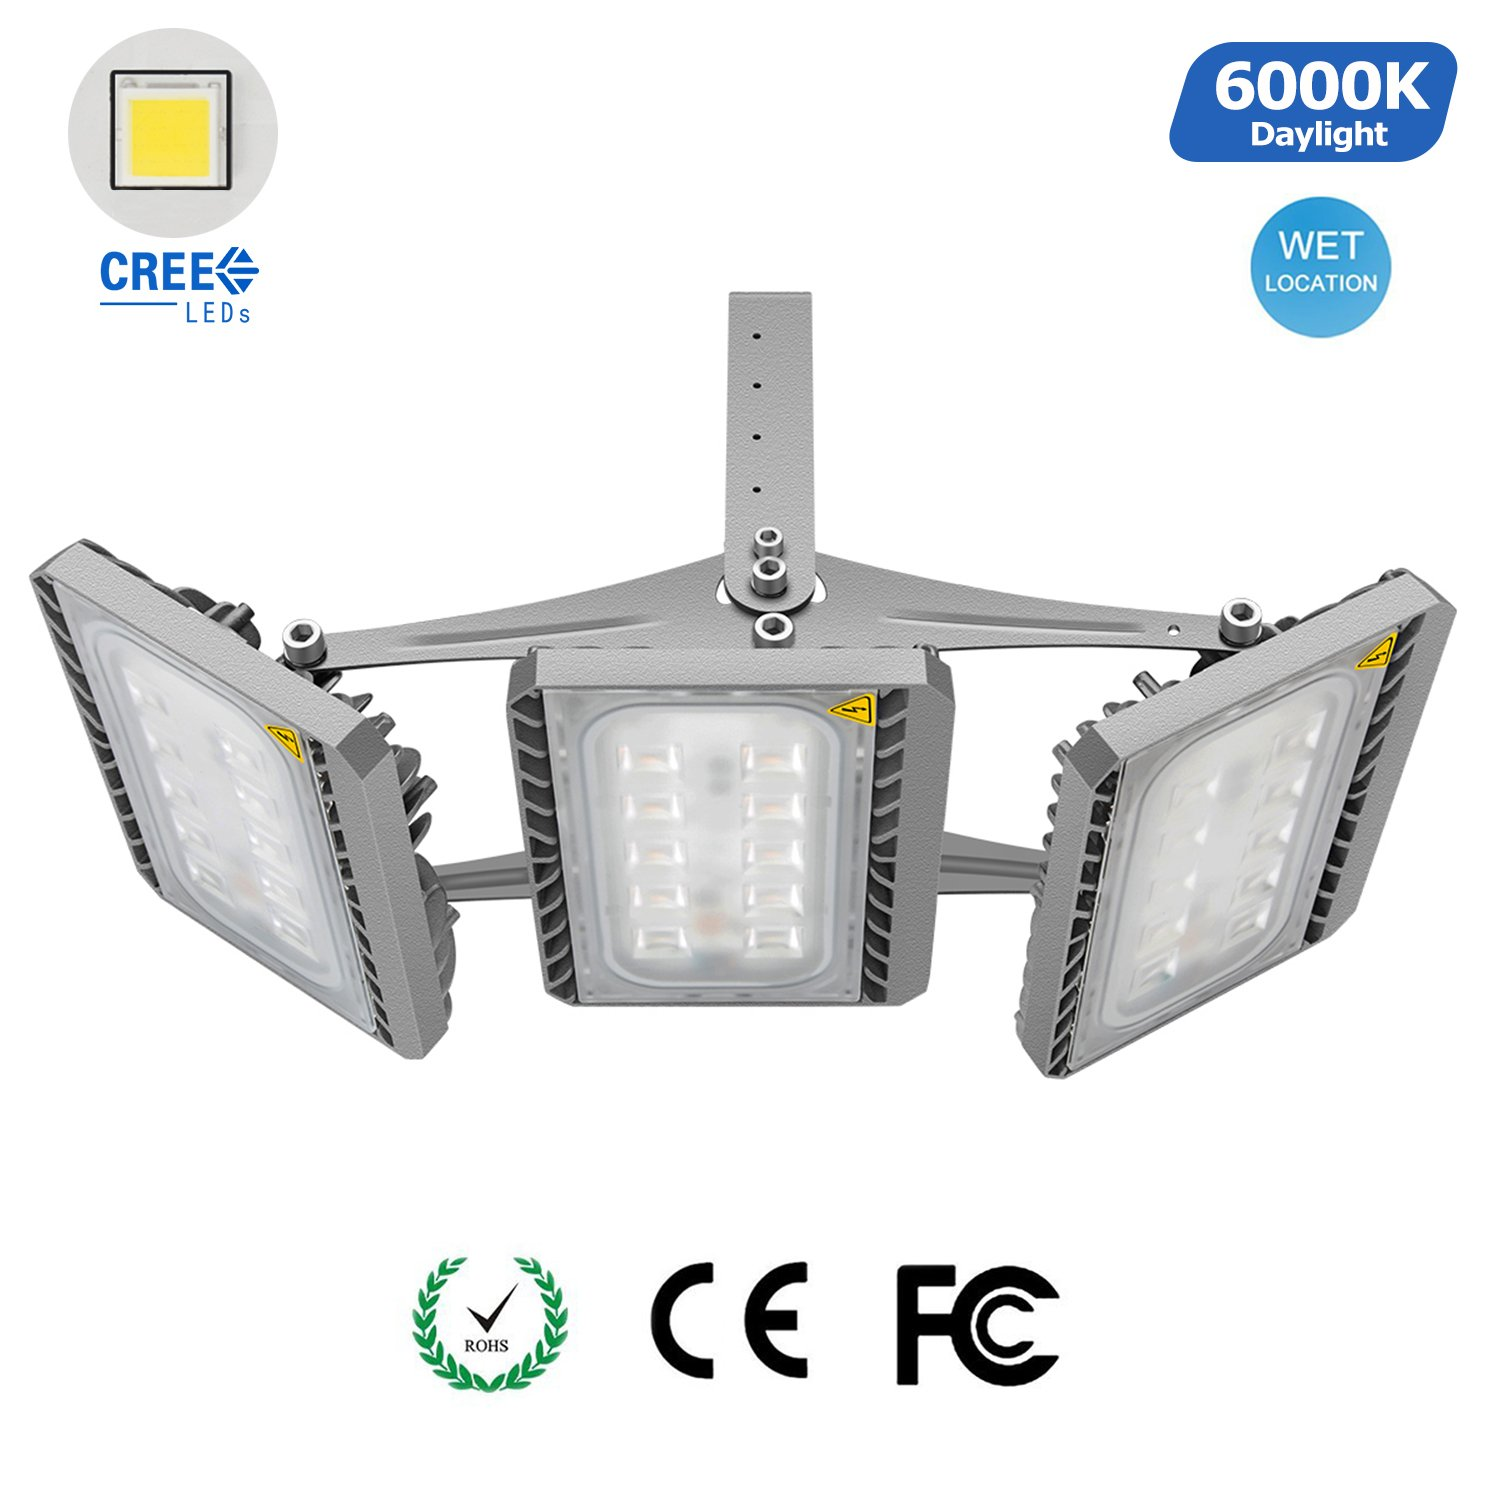 150W LED Flood Light Outdoor, CREE LED Source, 13500lm, 6000K Daylight White, 3-Head Security Lights Waterproof Floodlight by STASUN